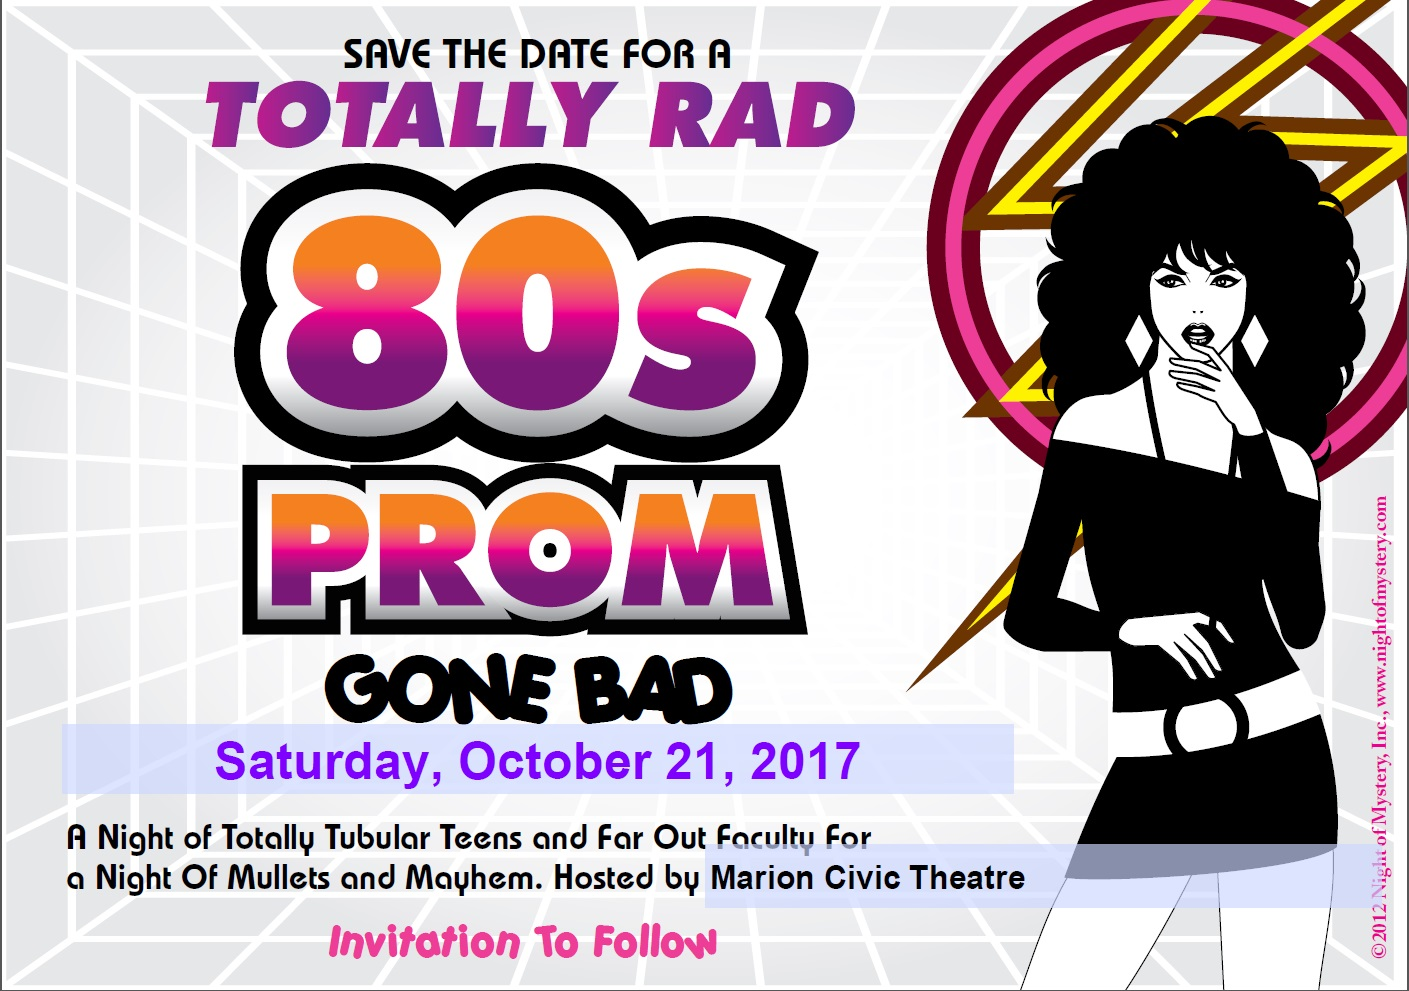 Totally Rad 80s Prom Gone Bad by NightofMystery.com